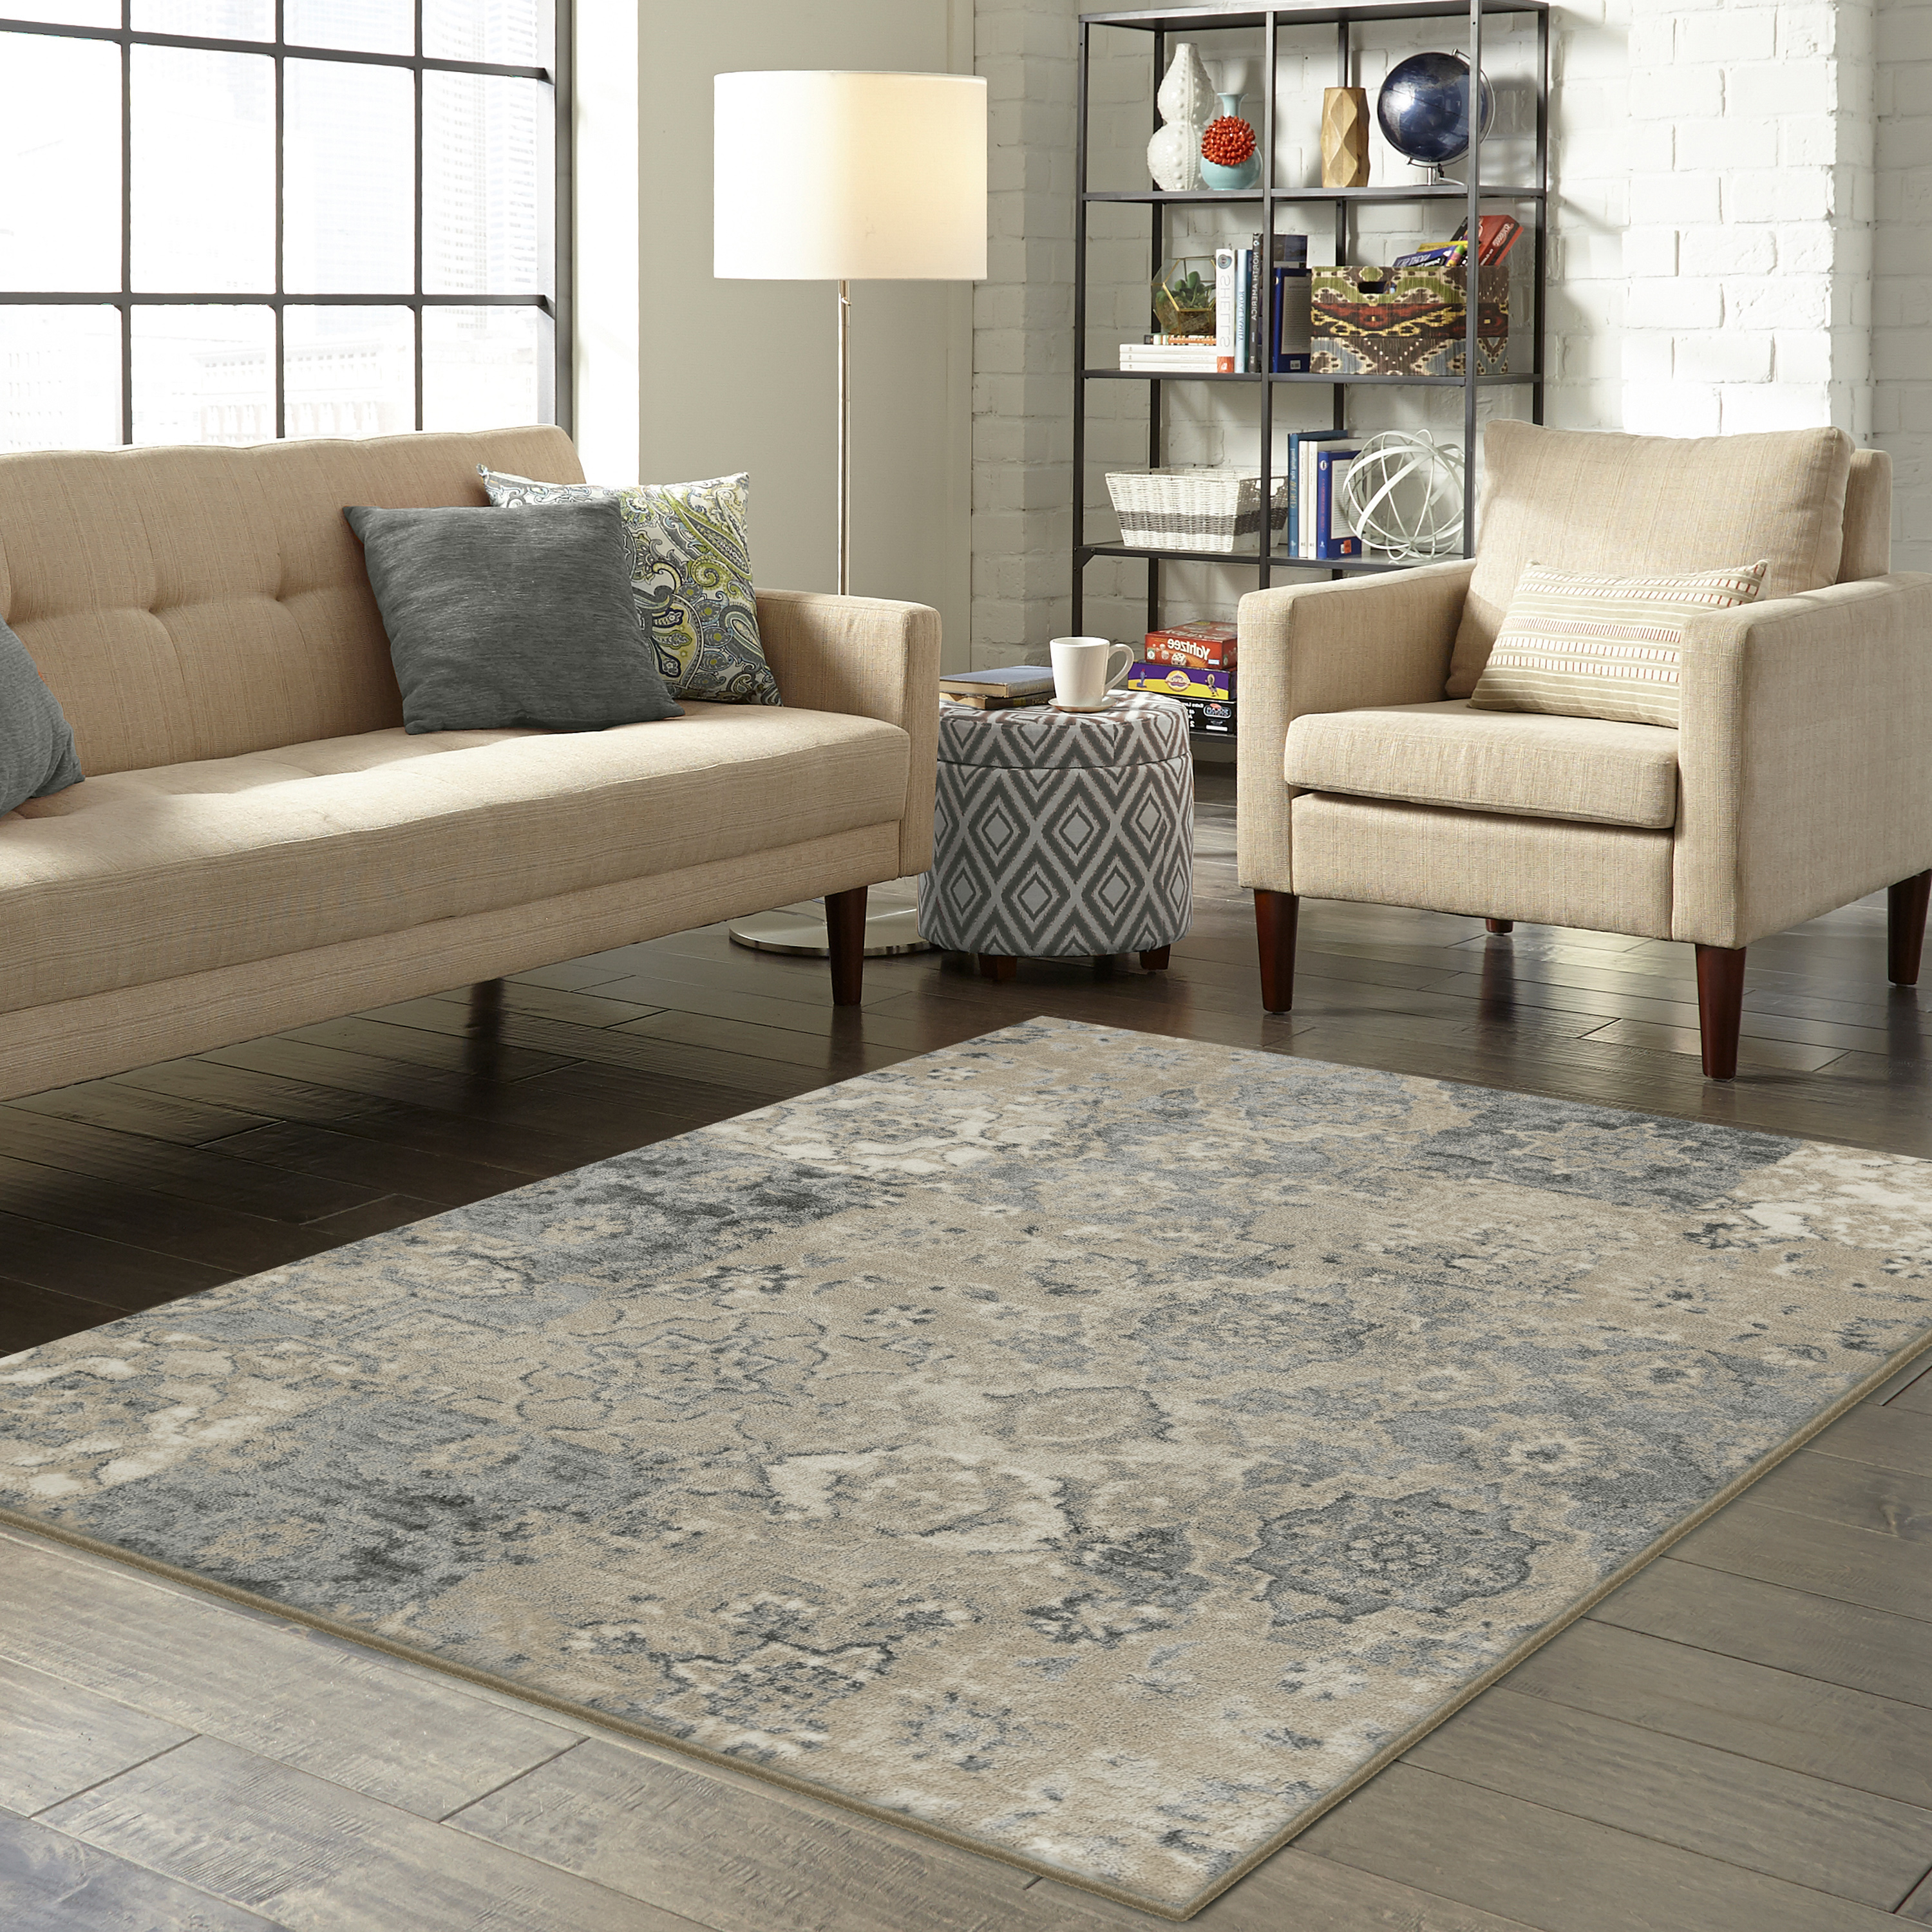 Better Homes and Gardens Distressed Patchwork Area Rug or Runner by Maples Industries, Inc.